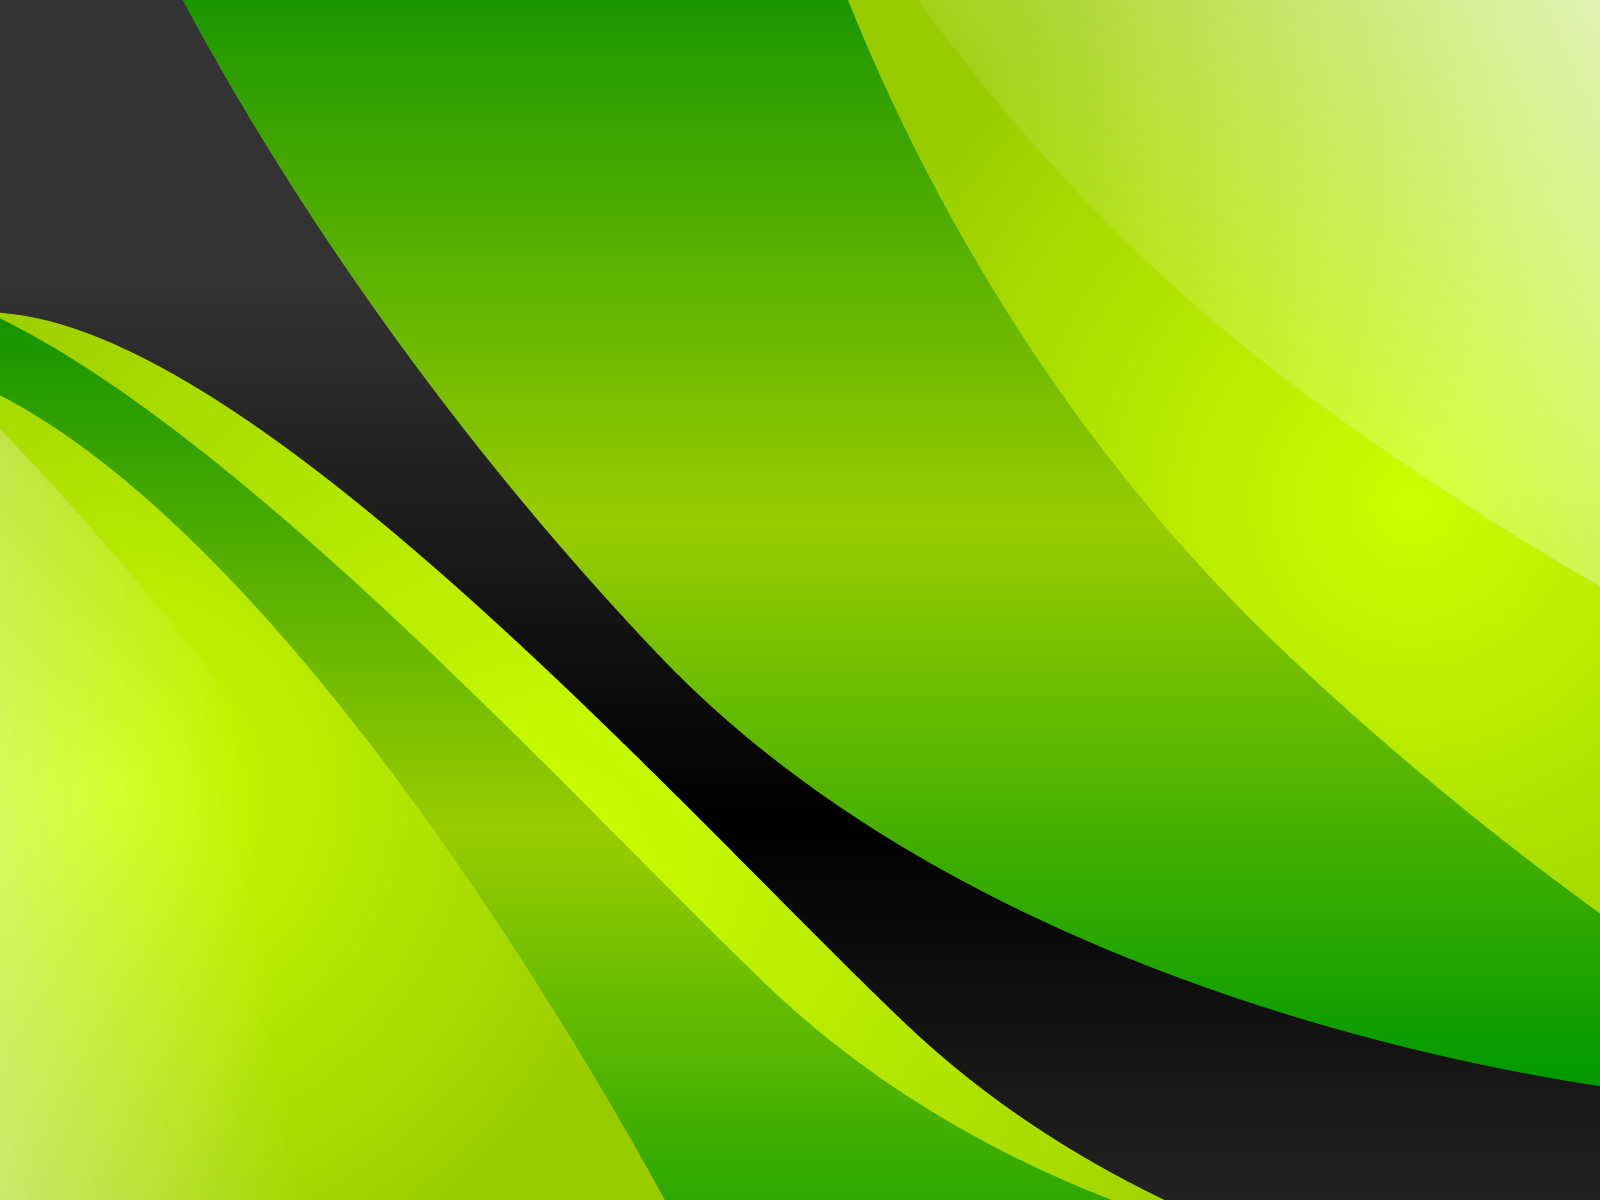 Lime Green and Black Wallpaper - WallpaperSafariBlack And Lime Green Backgrounds